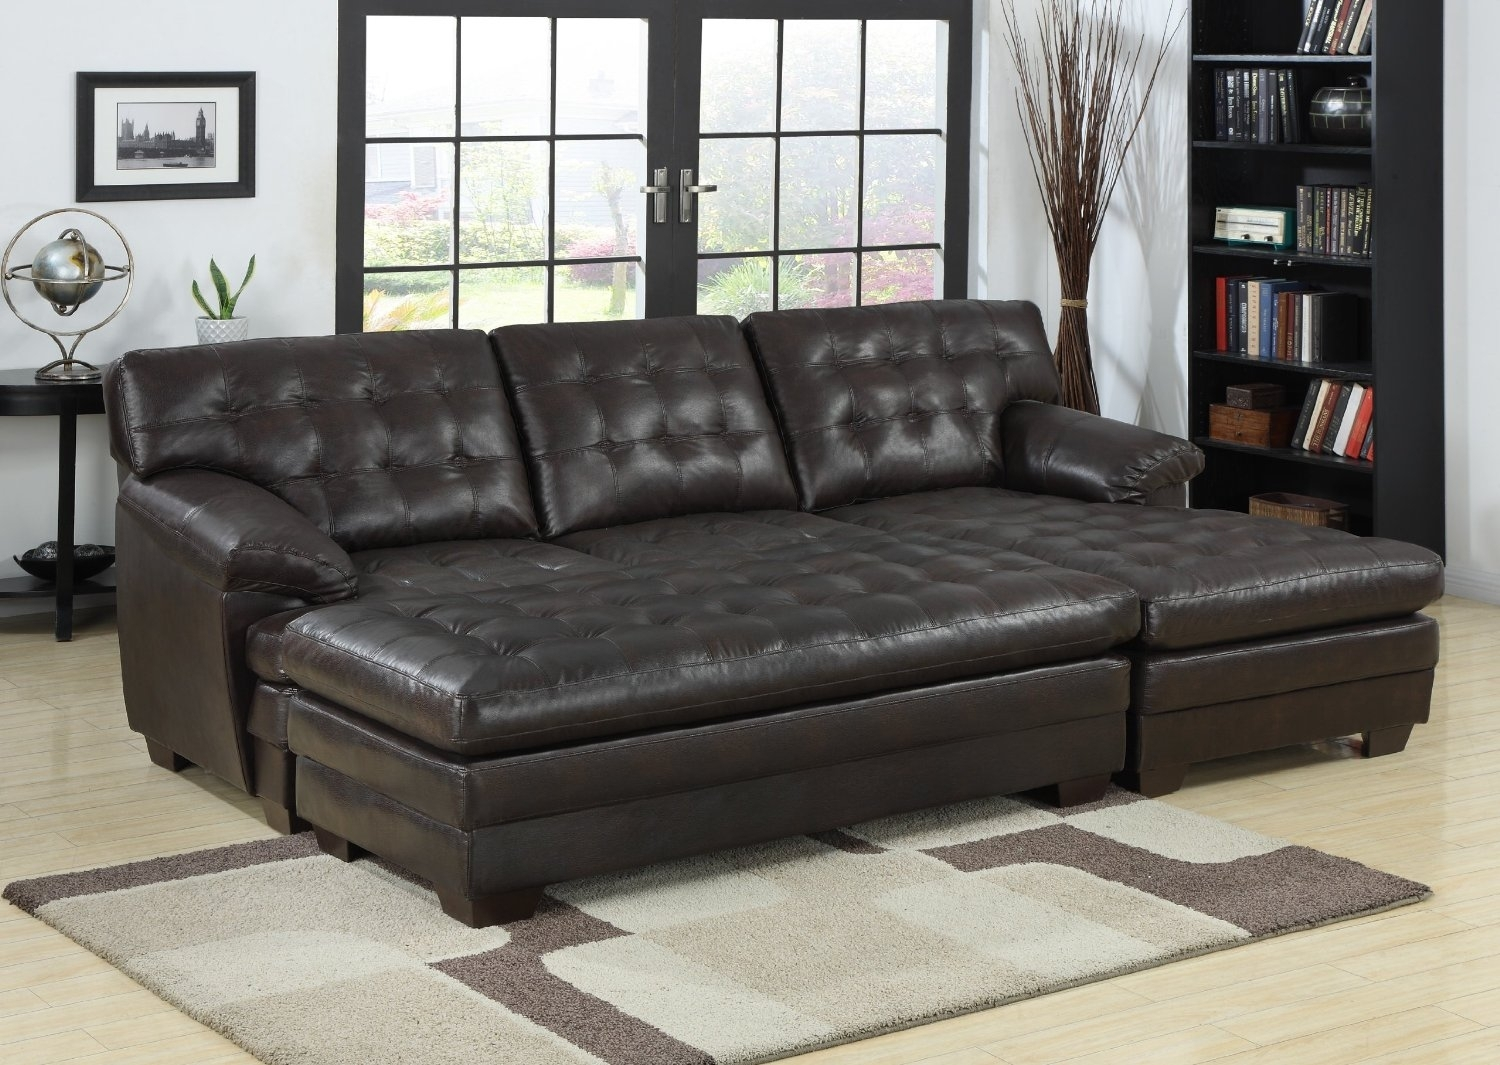 Chaise Sofa With Storage Ottoman | Baci Living Room intended for Taren Reversible Sofa/chaise Sleeper Sectionals With Storage Ottoman (Image 7 of 30)